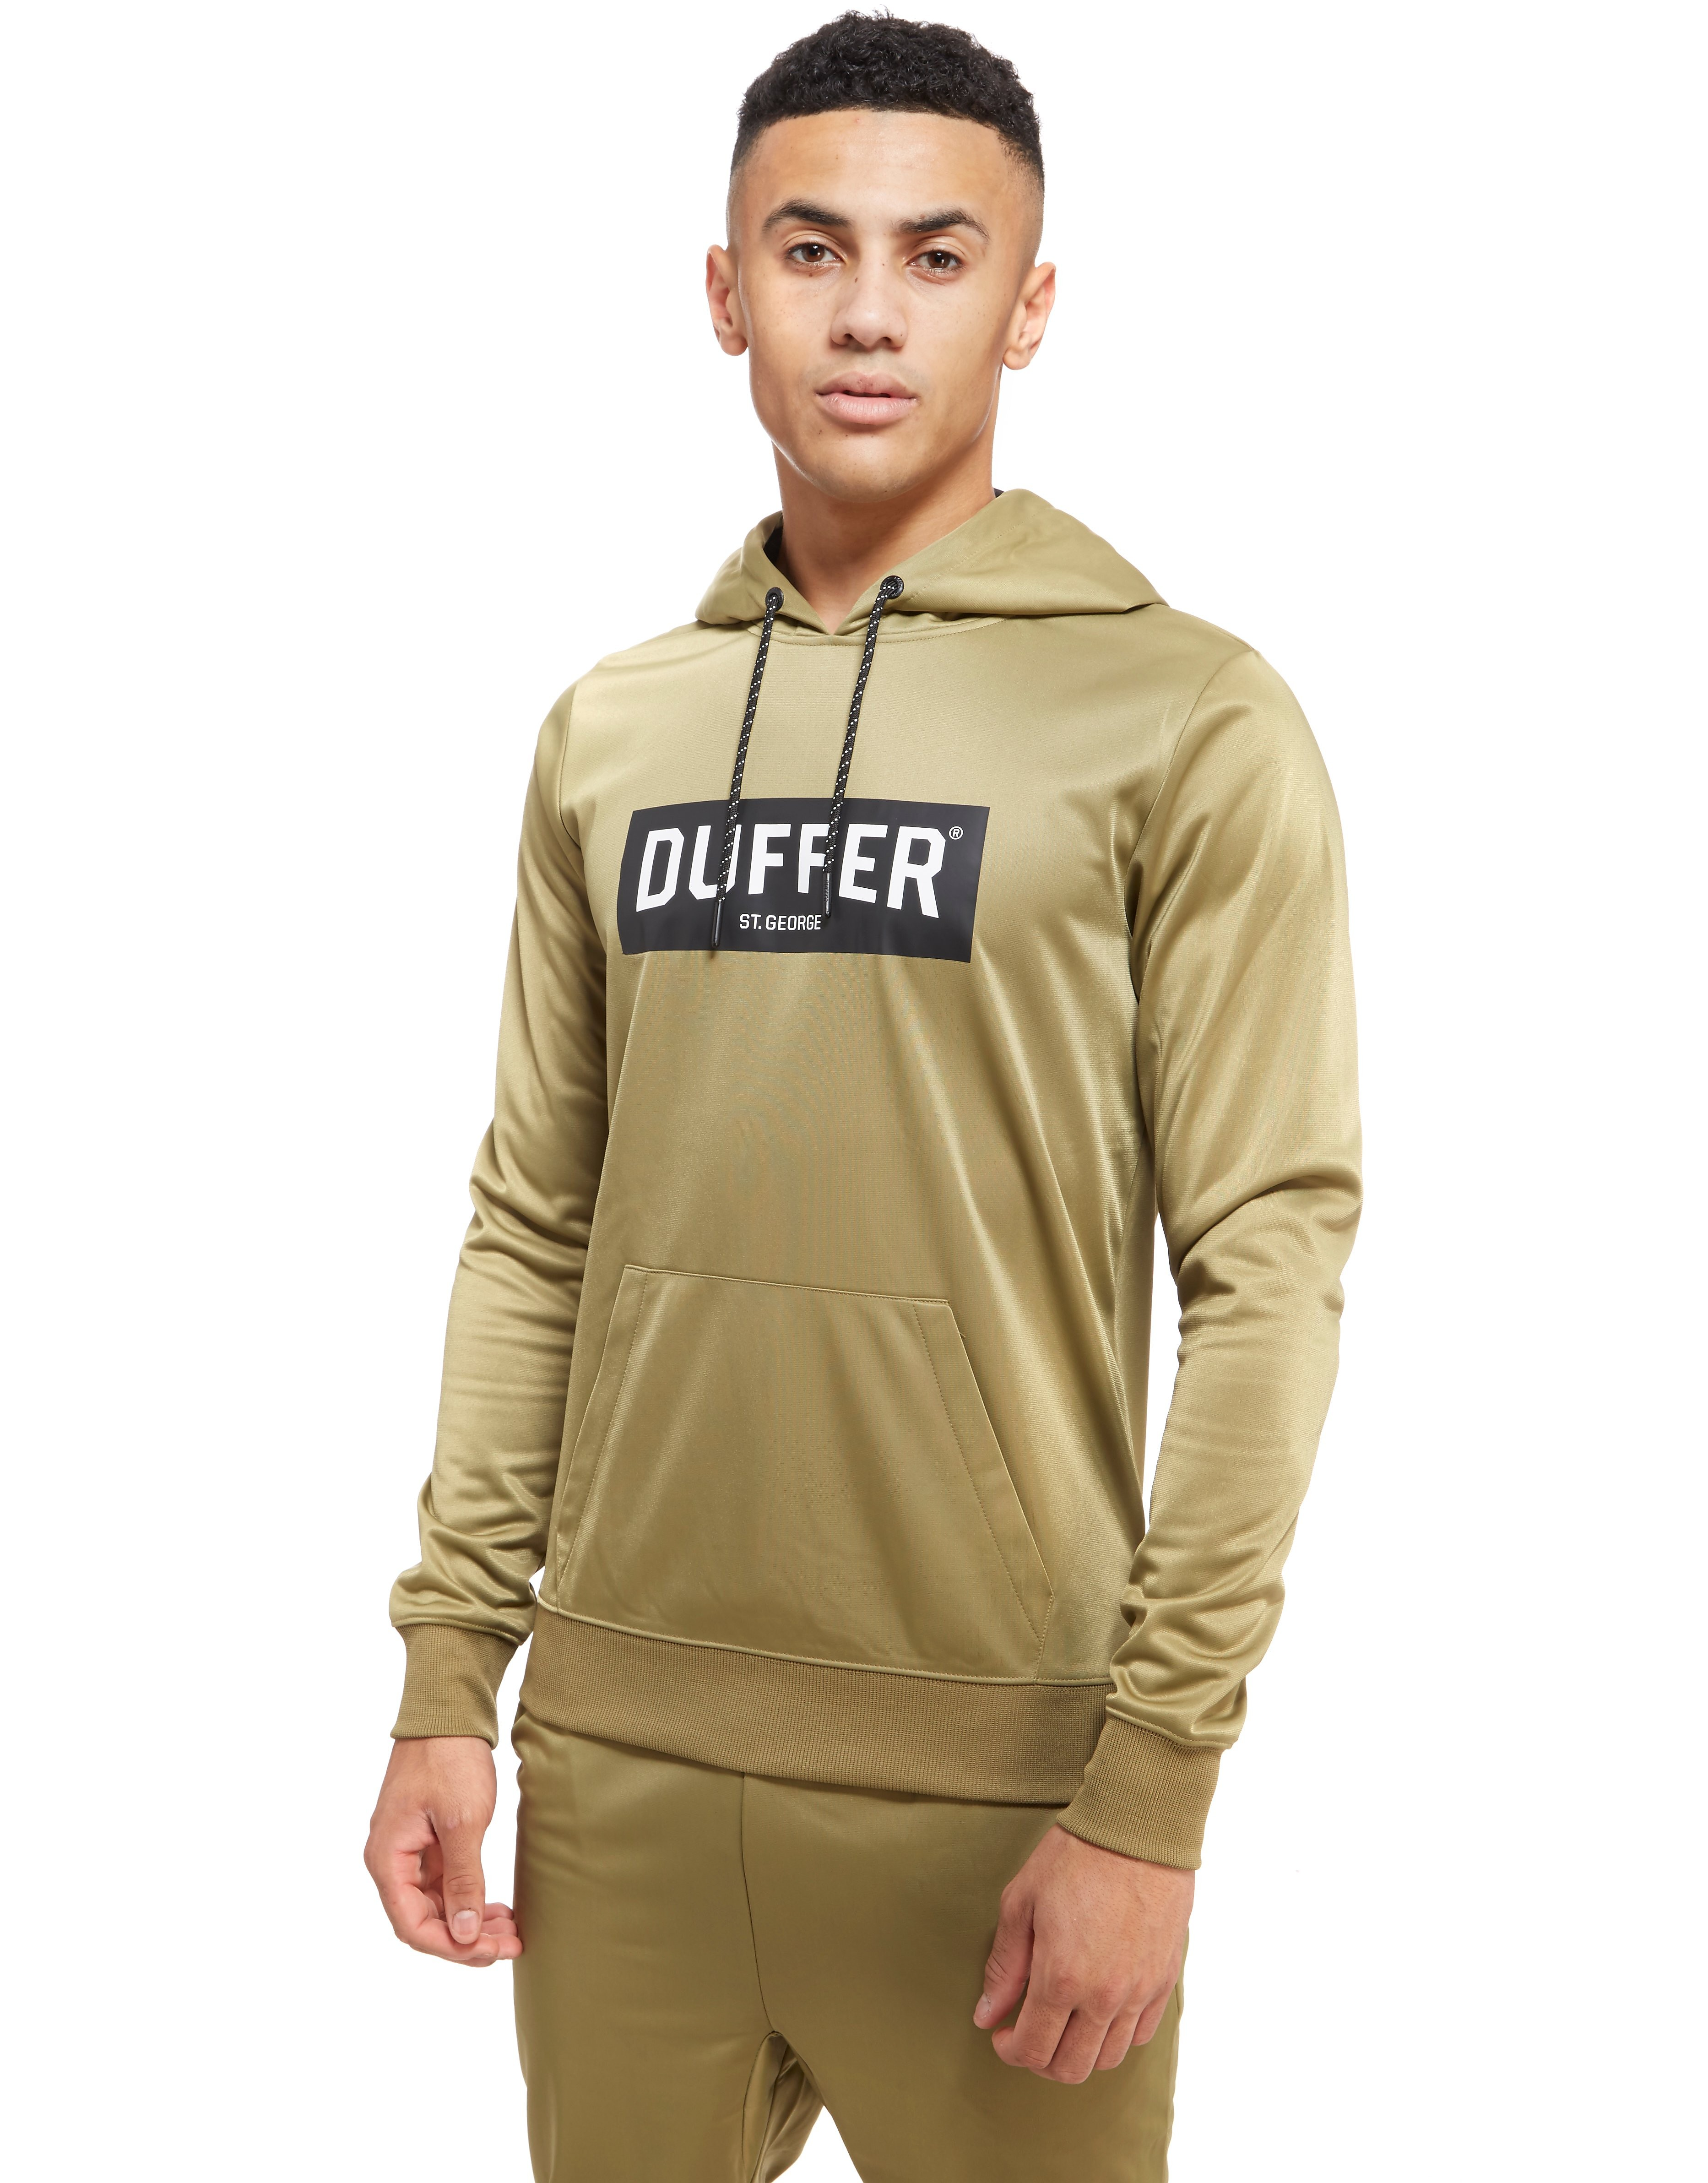 Duffer of St George Form Poly Hoody